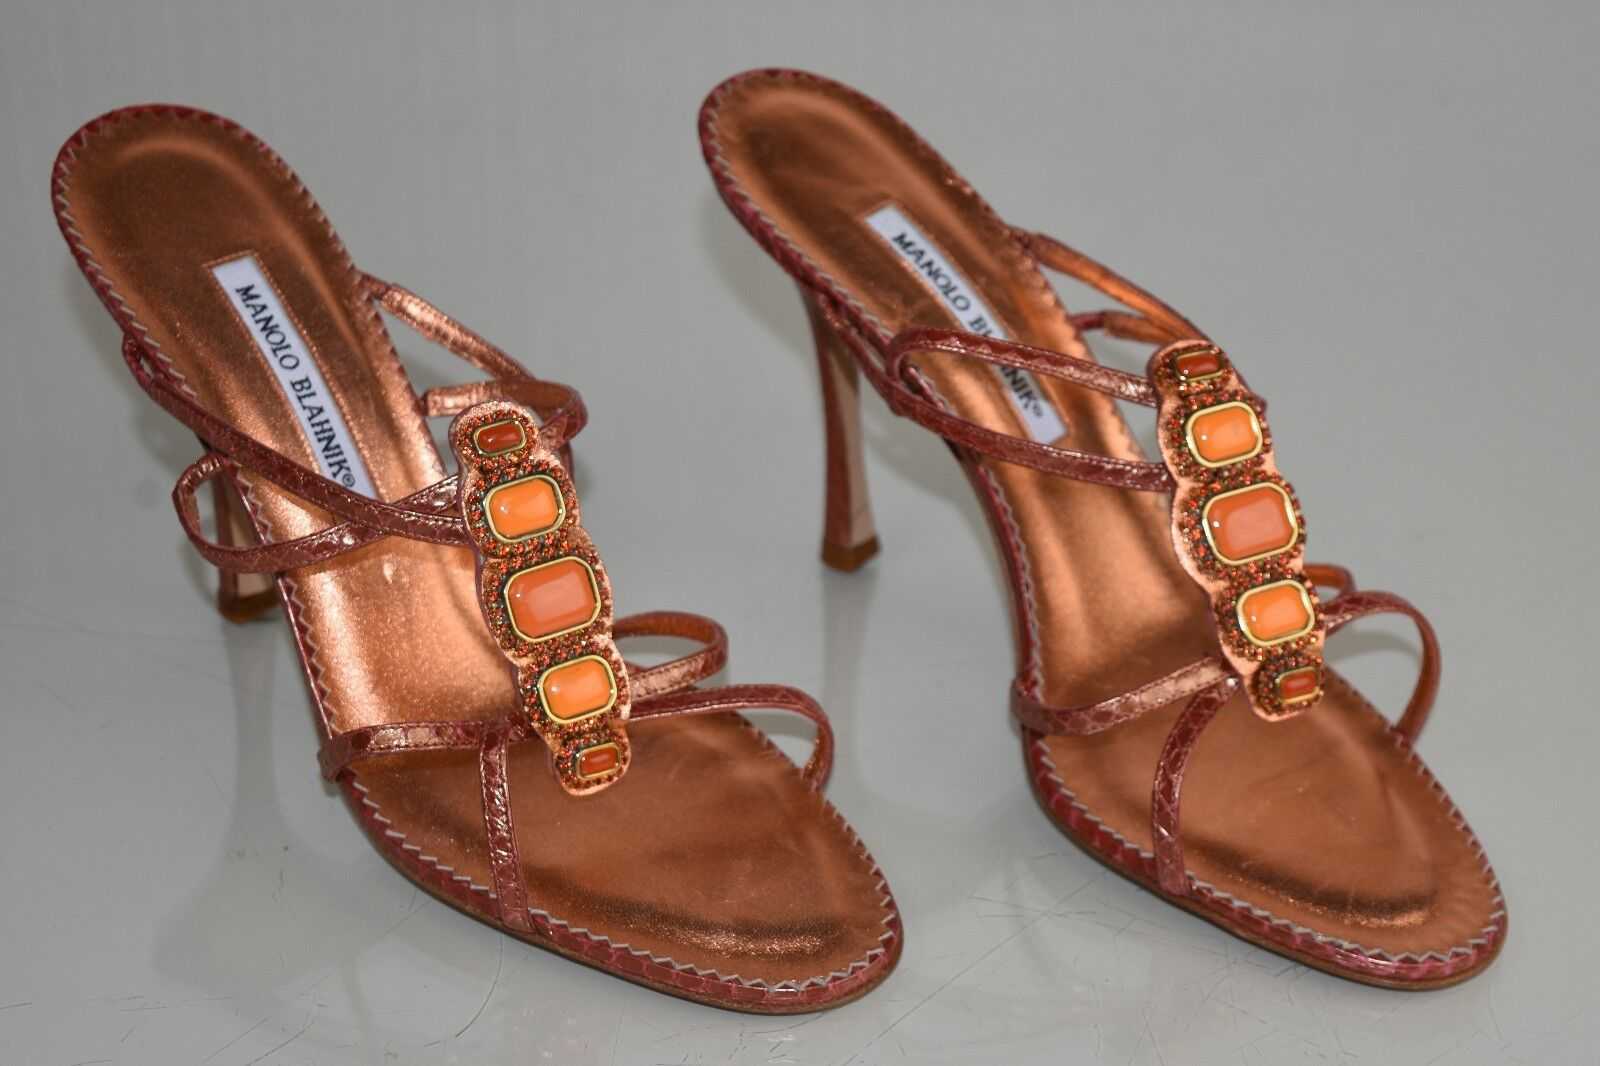 1190 NEW NEW NEW MANOLO BLAHNIK SANDALS CORAL SNAKE JEWELED CRYSTALS STRAPPY chaussures 41.5 ab908e